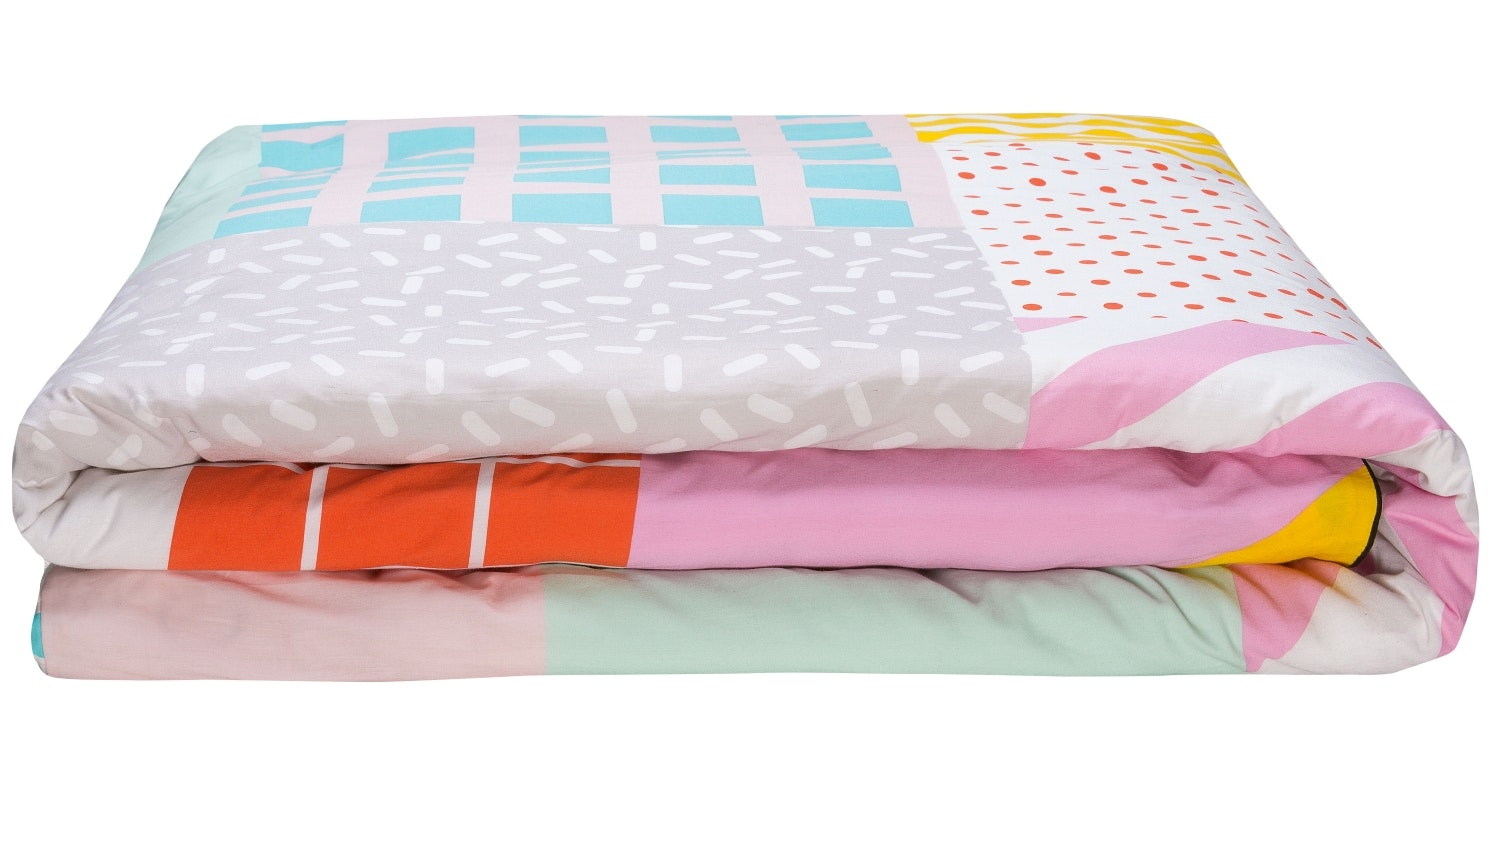 Hiccups Graceland Pink Quilt Cover Set